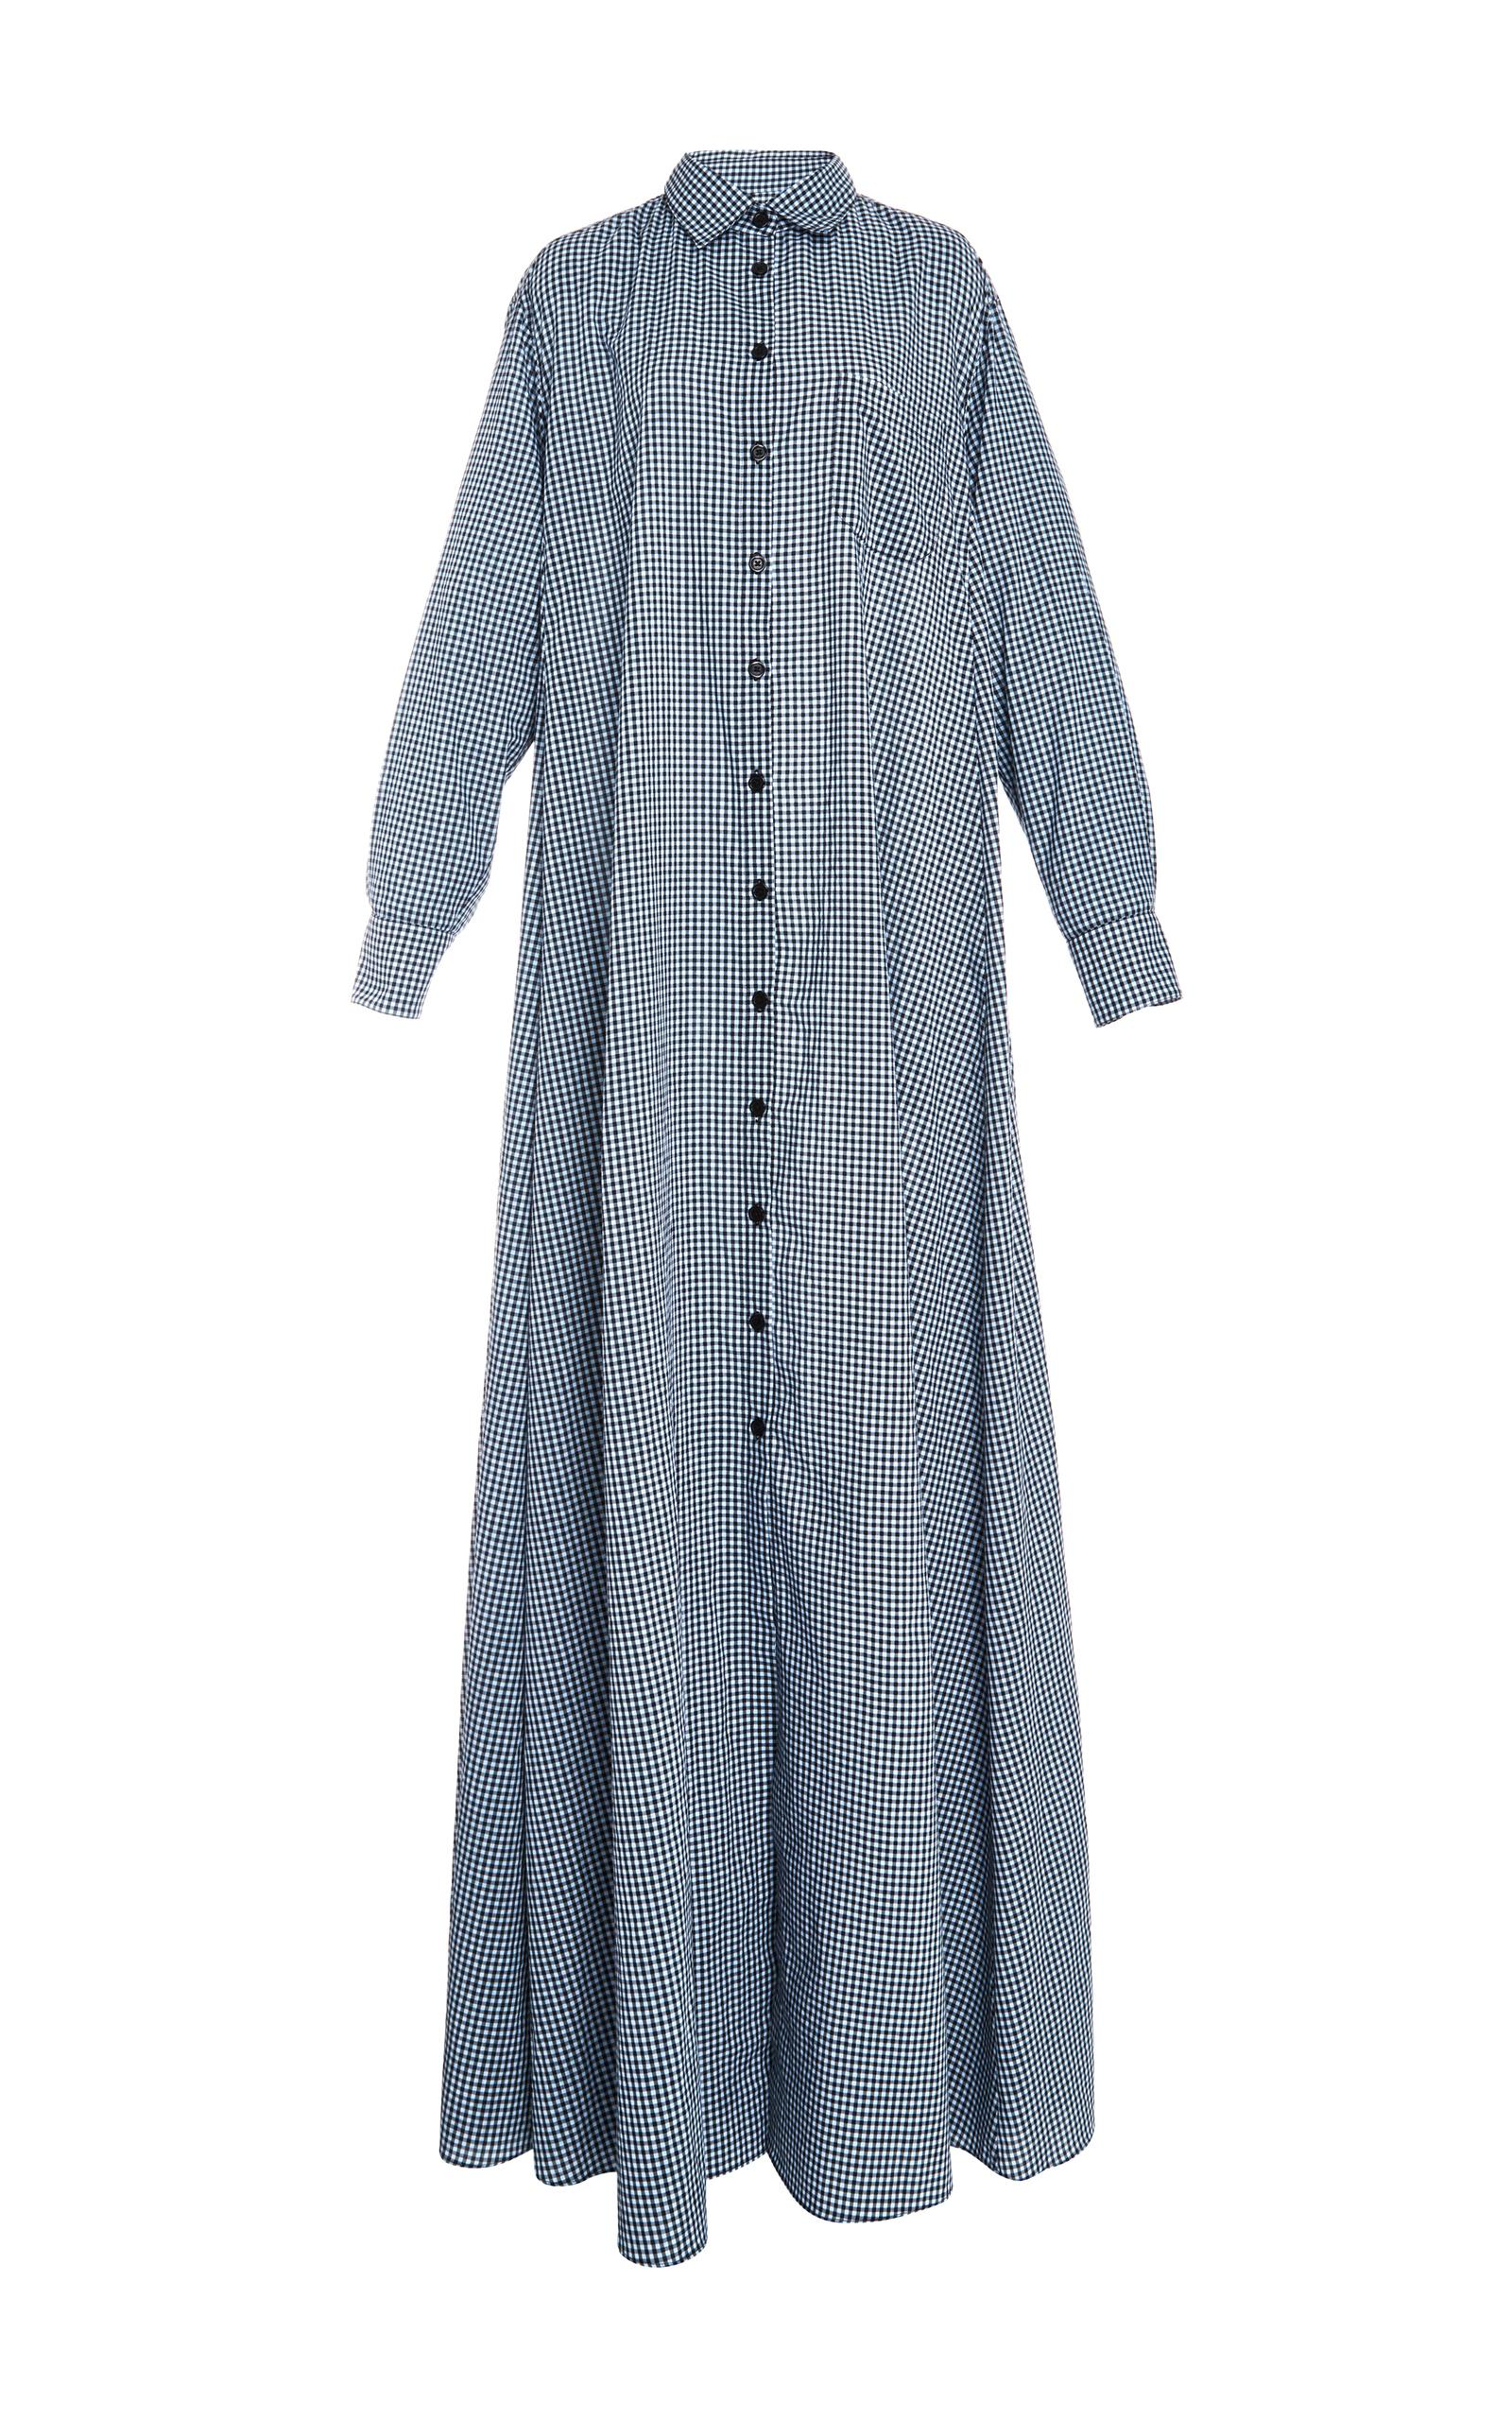 I have a blue gingham that I wanted to make a shirtdress out of. Reading this post is prompting me to think seriously about getting it cut out. I have several patterns, but I think I want a Harrison bodice with short sleeves and a circle skirt attached.